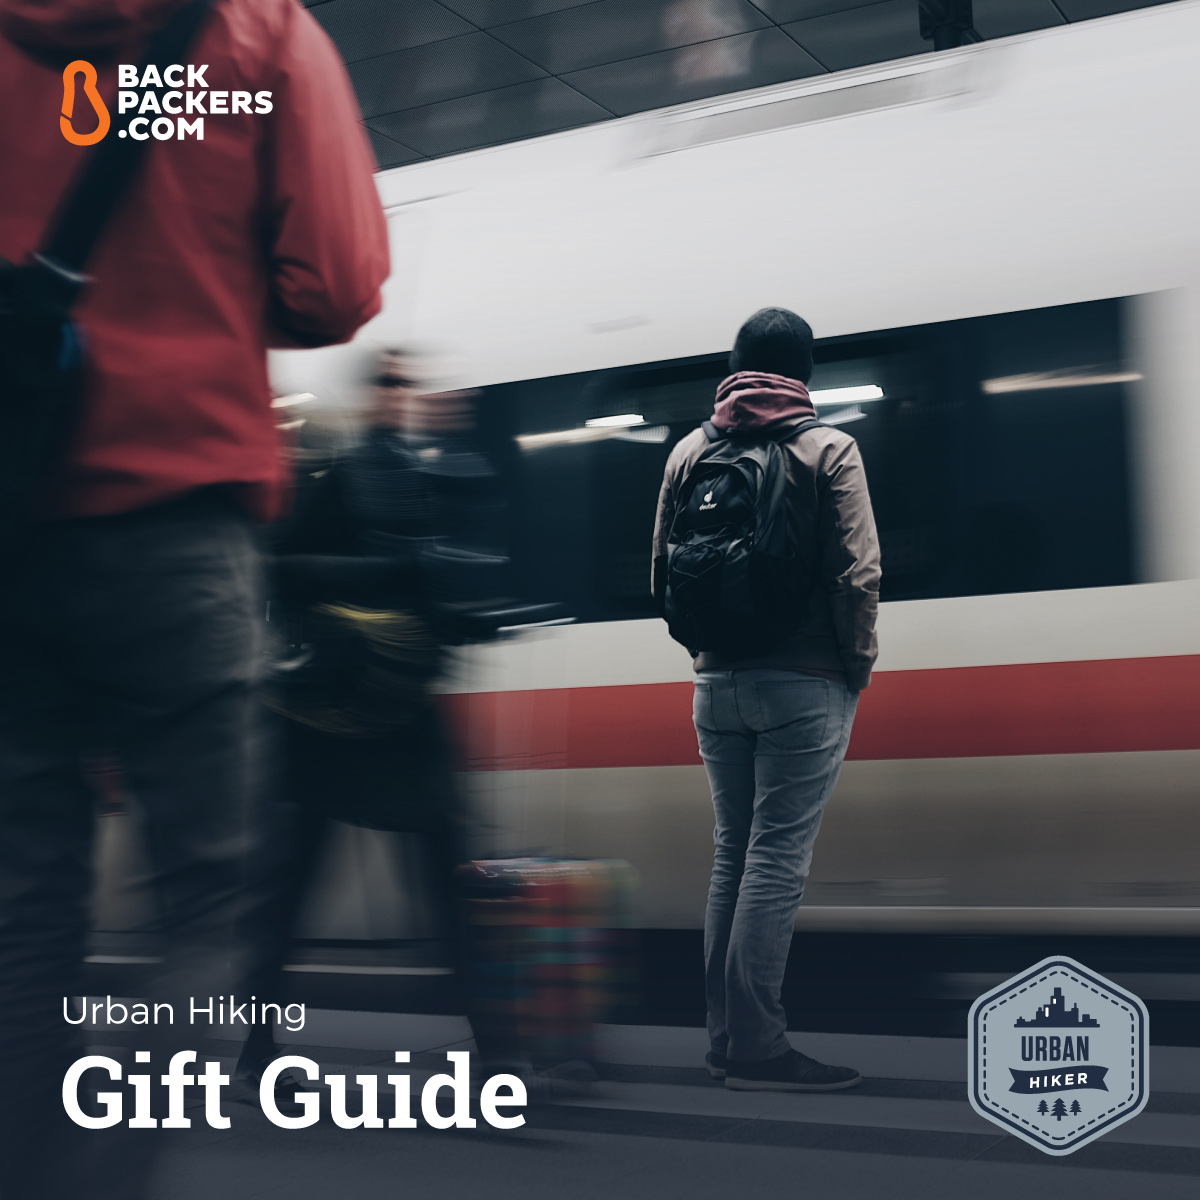 urban hiking gift guide style 1B